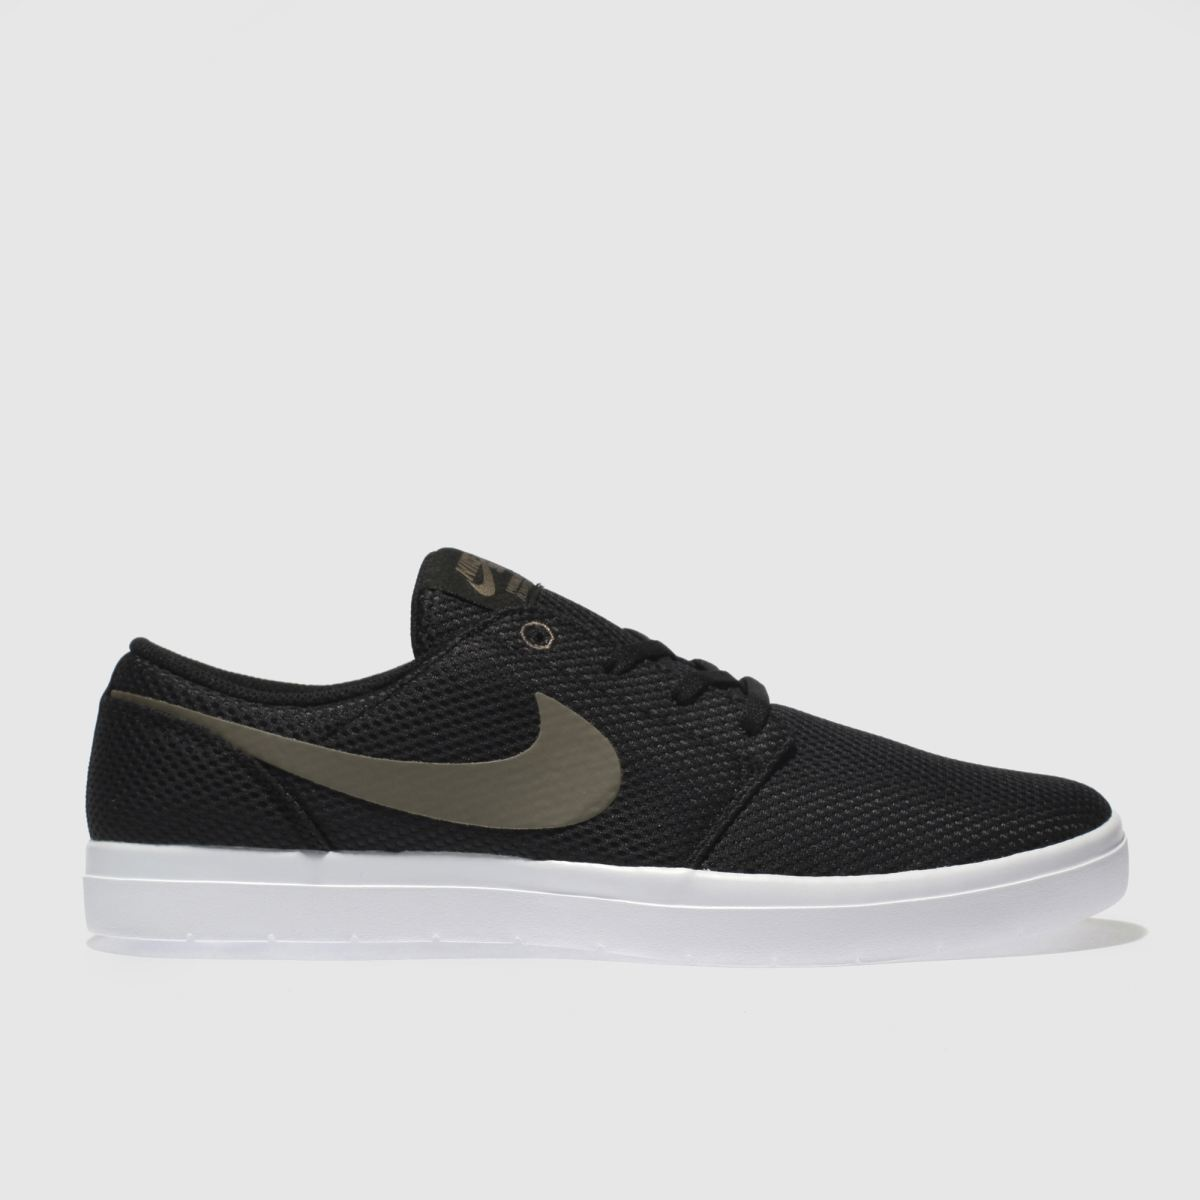 Nike Sb Black Portmore Ii Ultralight Trainers